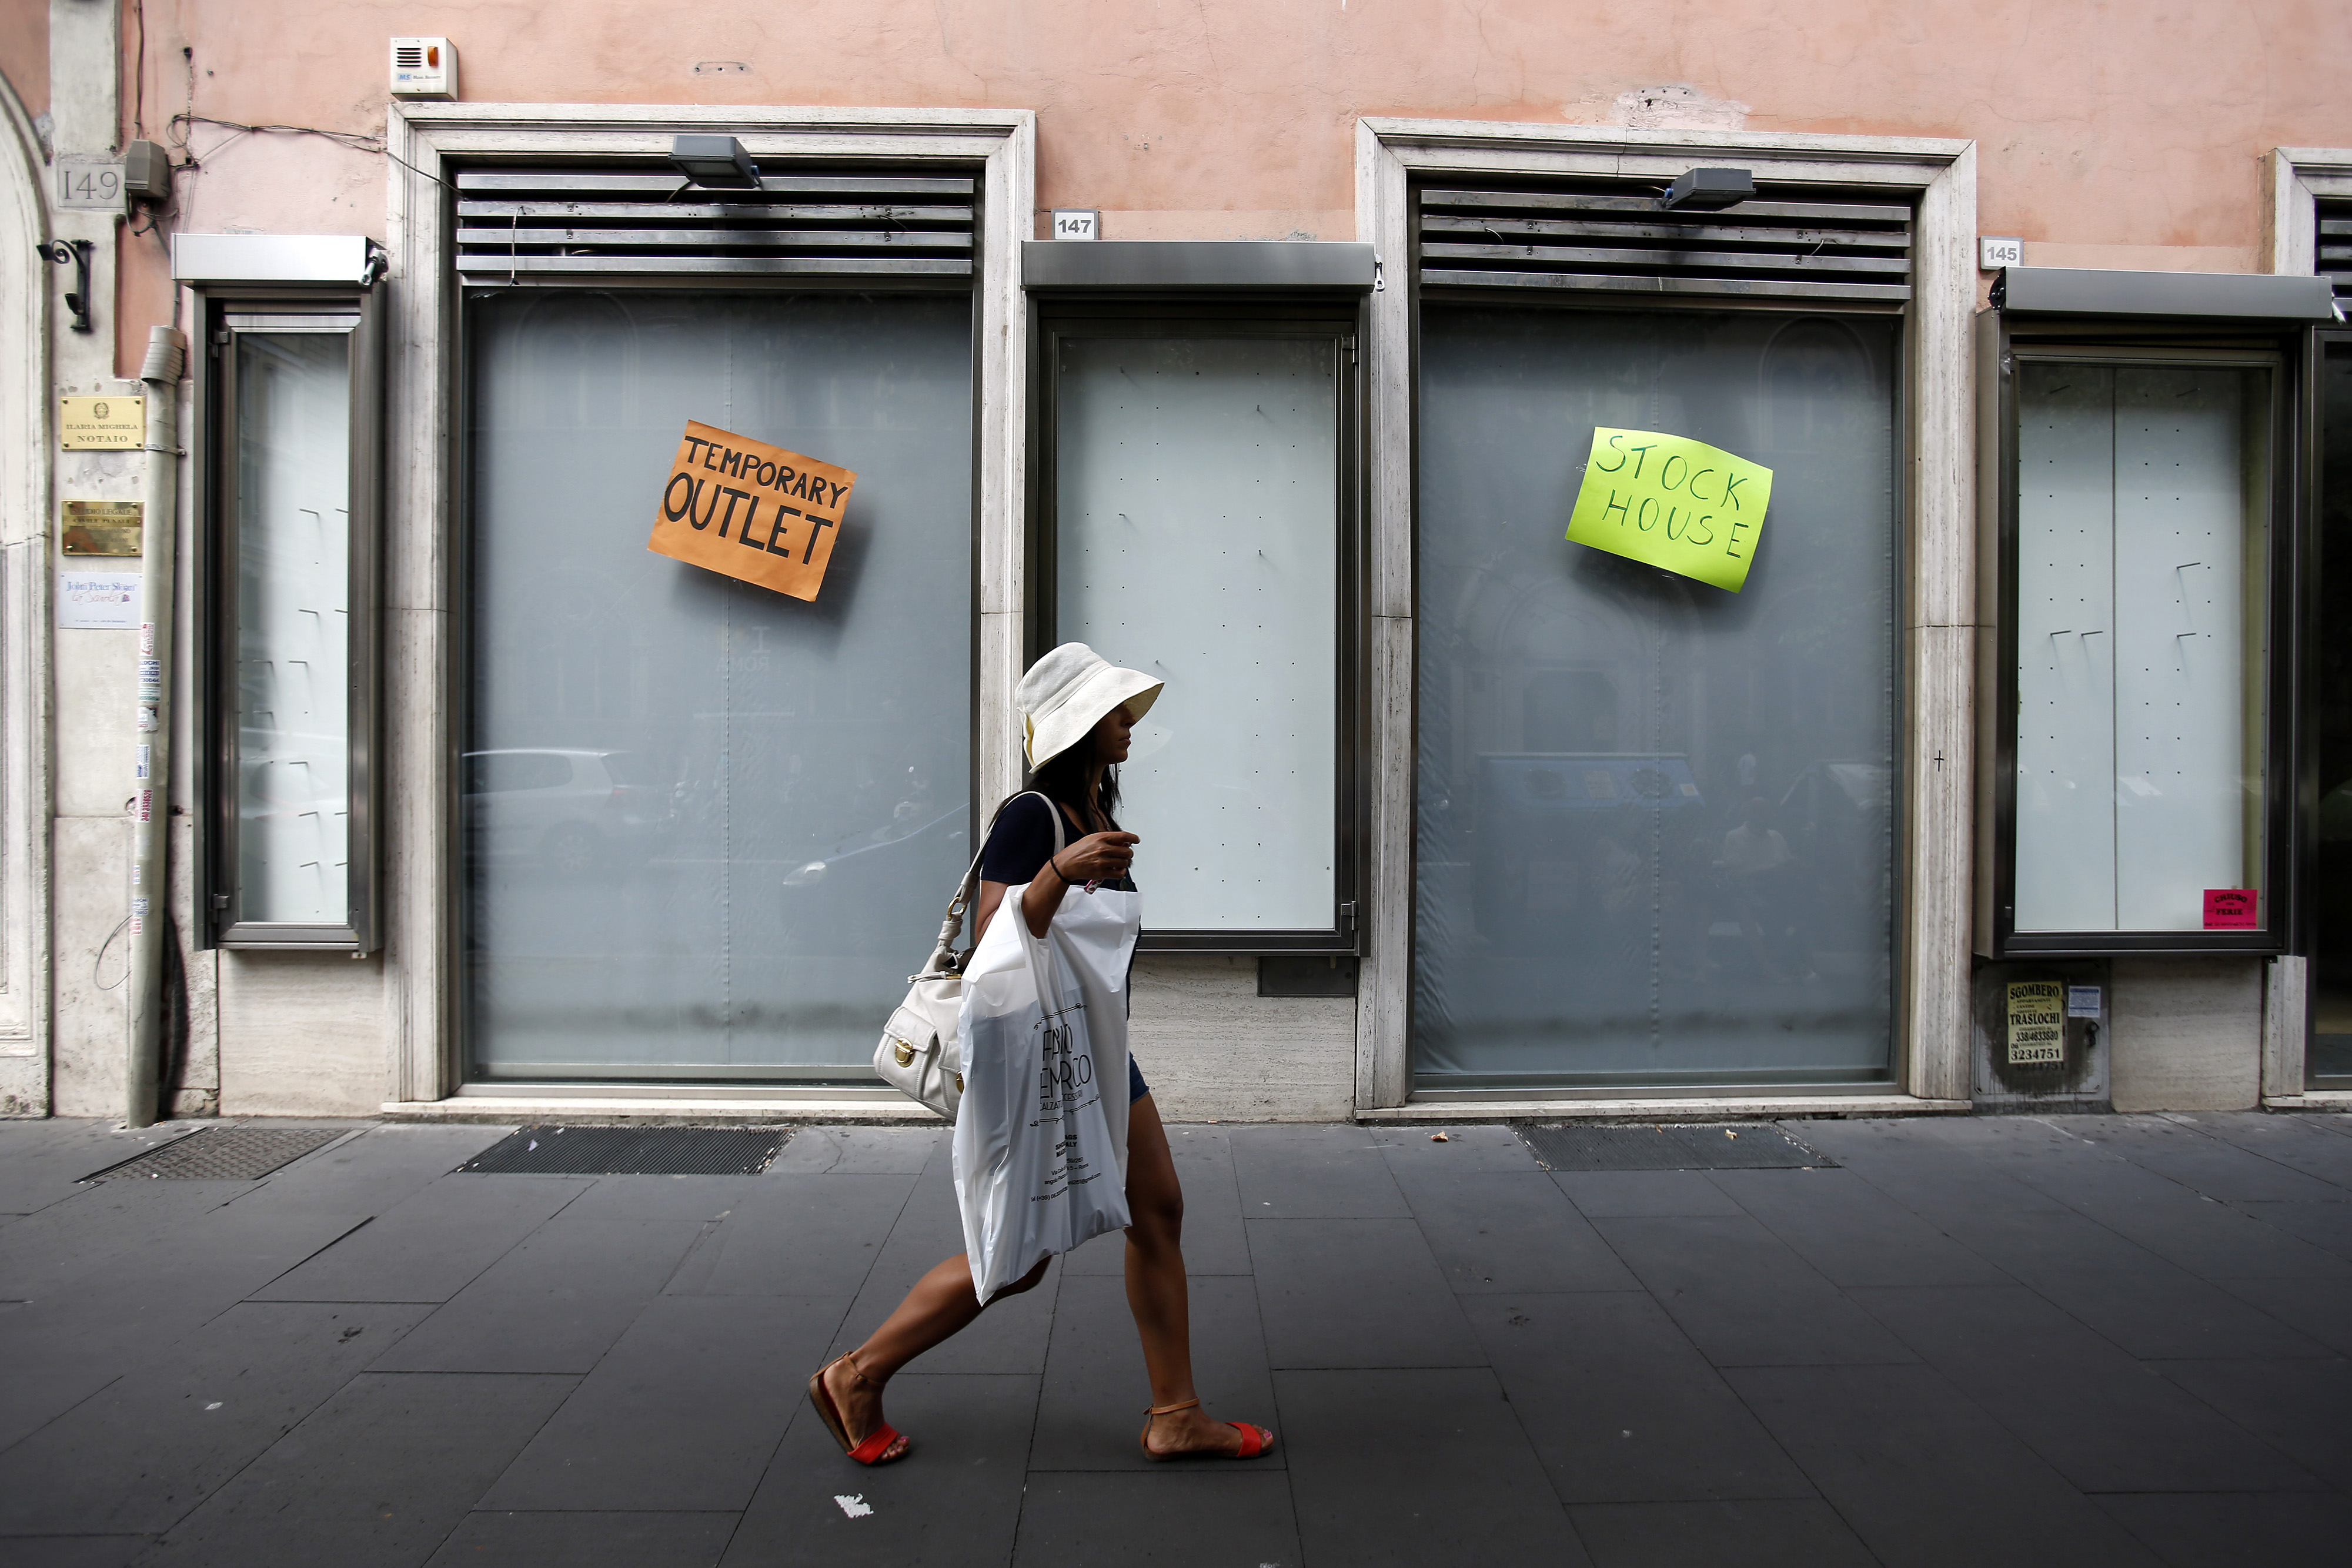 A pedestrian carries a plastic shopping bag as she passes a closed-down temporary outlet store in Rome, Italy, on Tuesday, Aug. 12, 2014. Italy's economy shrank 0.2 percent in the second quarter after contracting 0.1 percent in the previous three months.